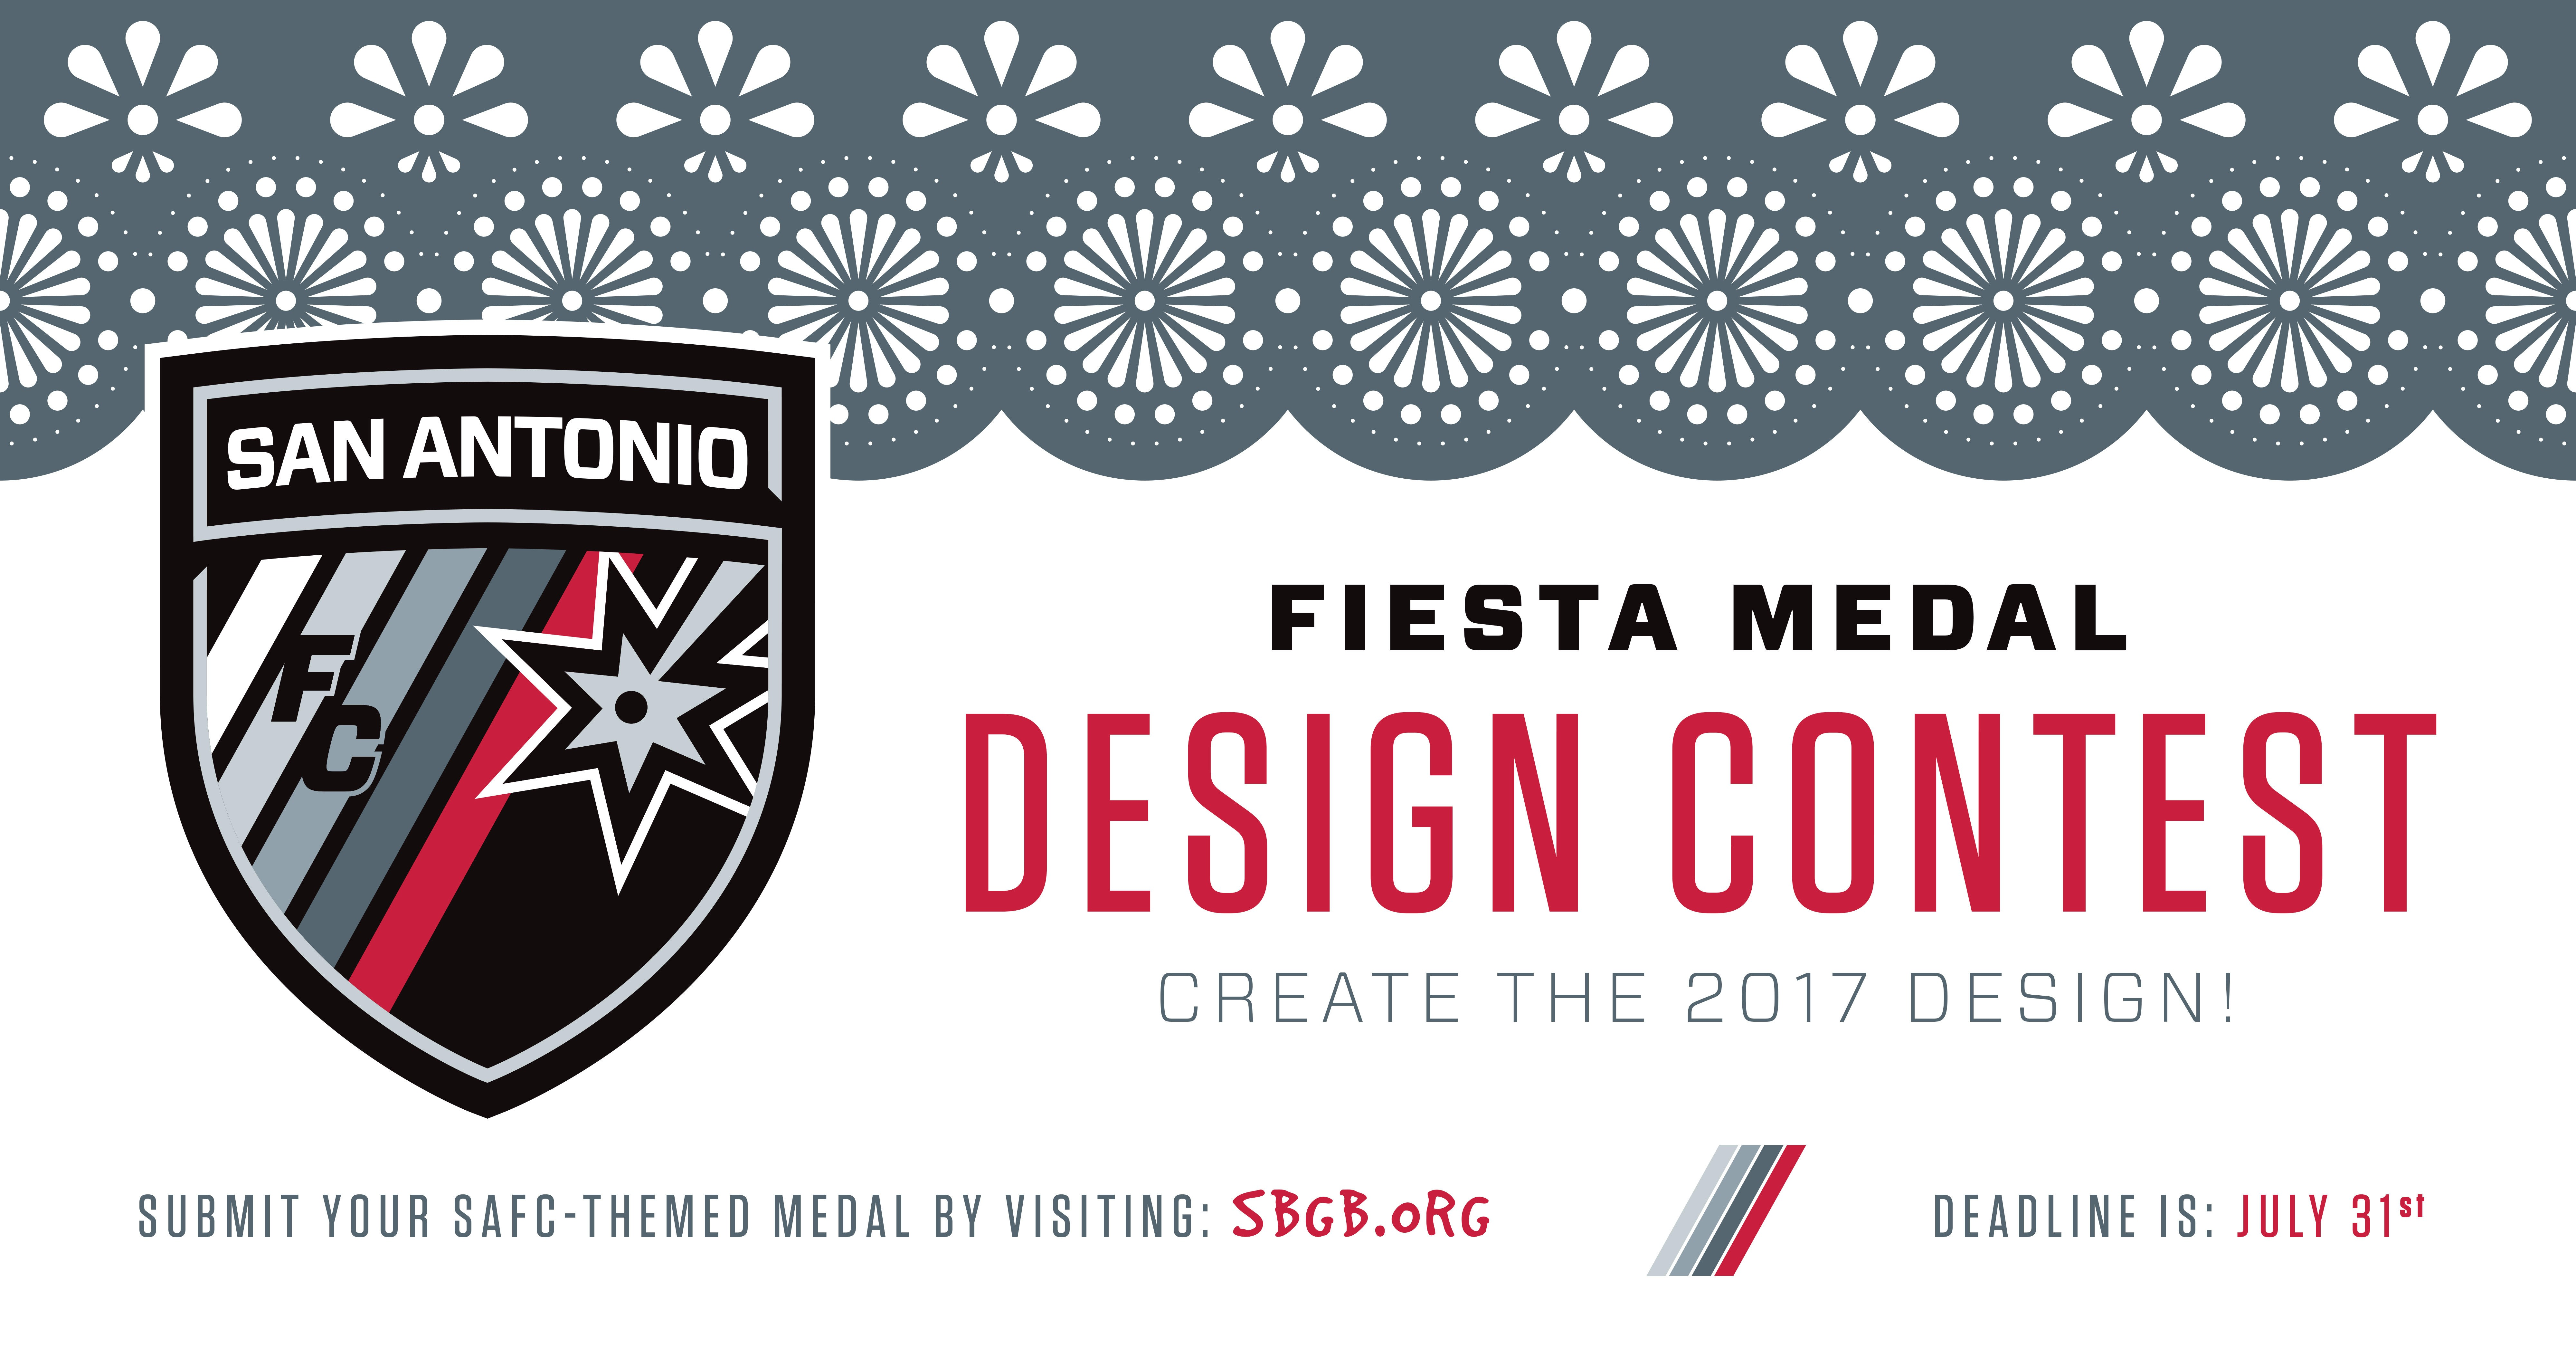 San Antonio Fc To Host Fiesta Medal Design Contest The Daily